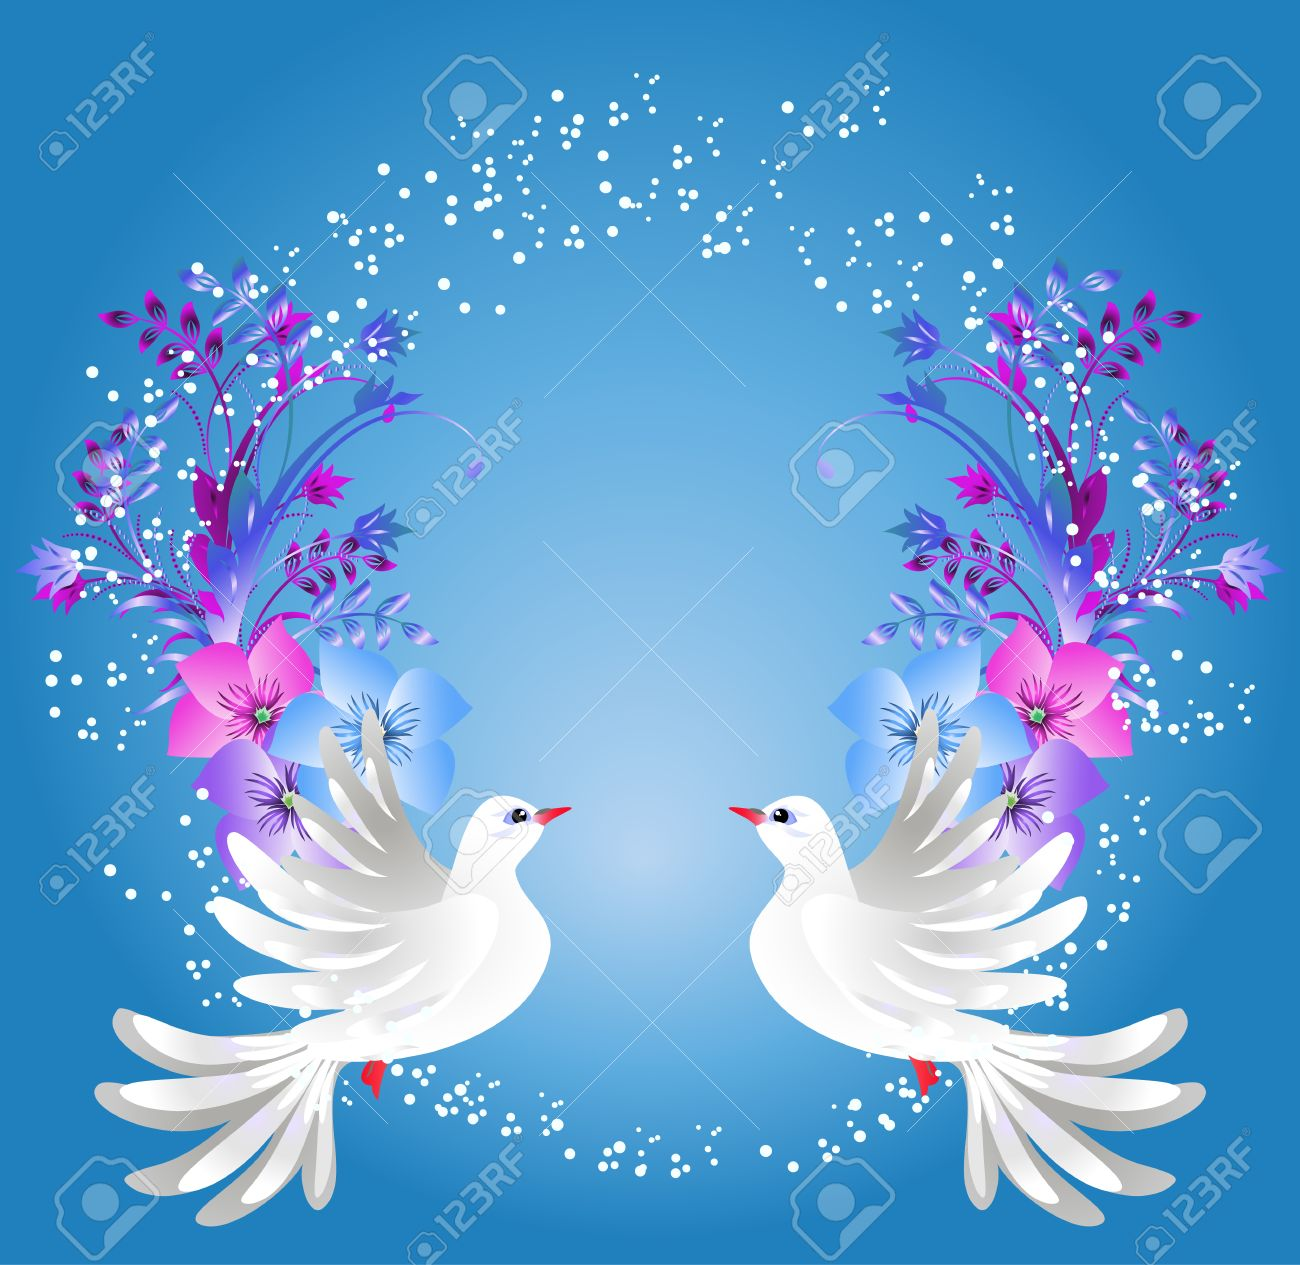 White dove ornament - Flying Two White Doves On Blue Background With Floral Ornament Stock Vector 35718514